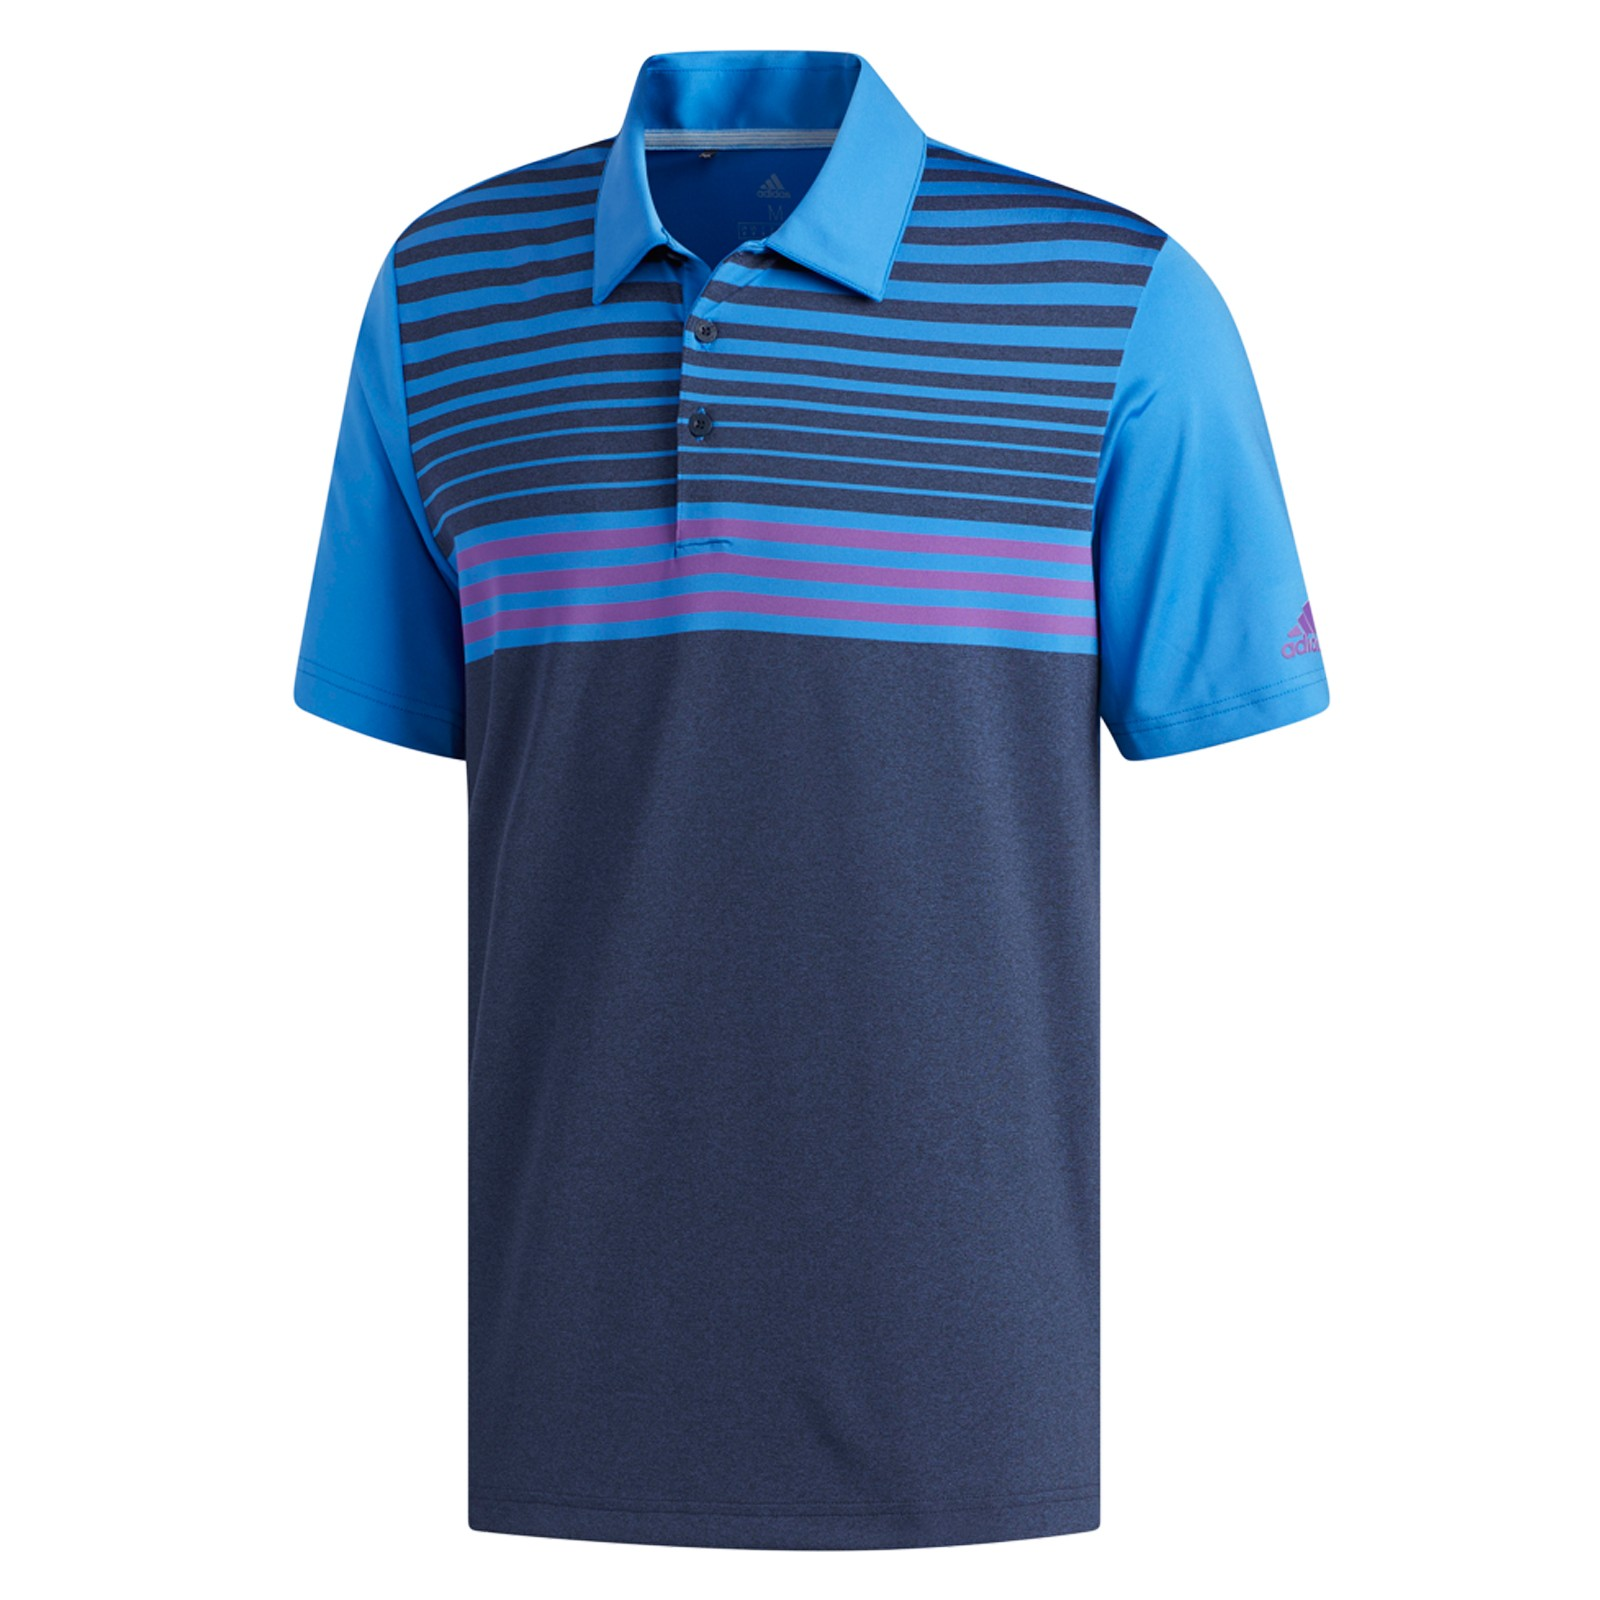 06c3544d3 adidas Ultimate 365 3 Stripes Heather Polo